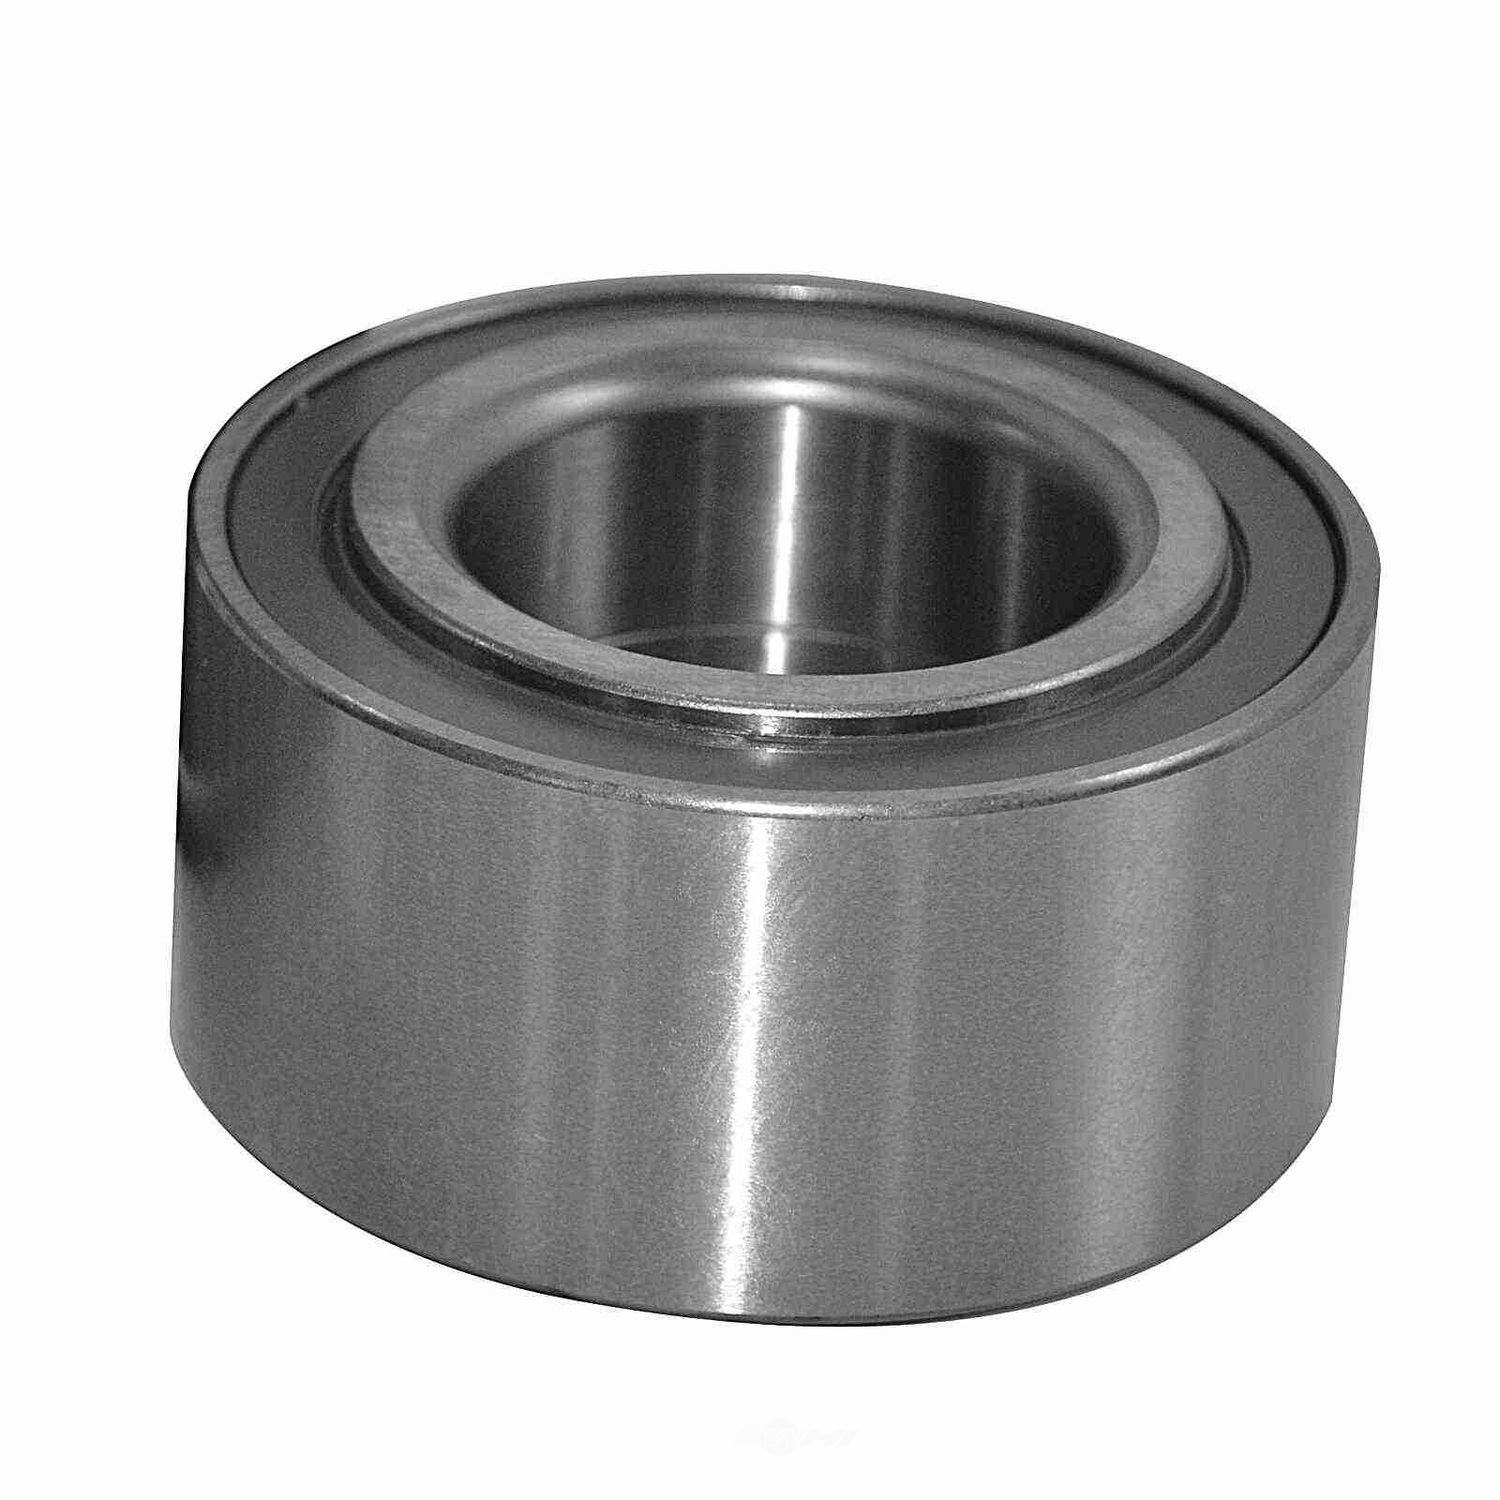 GSP NORTH AMERICA INC. - Gsp Axle Bearing & Hub Assembly - AD8 361030